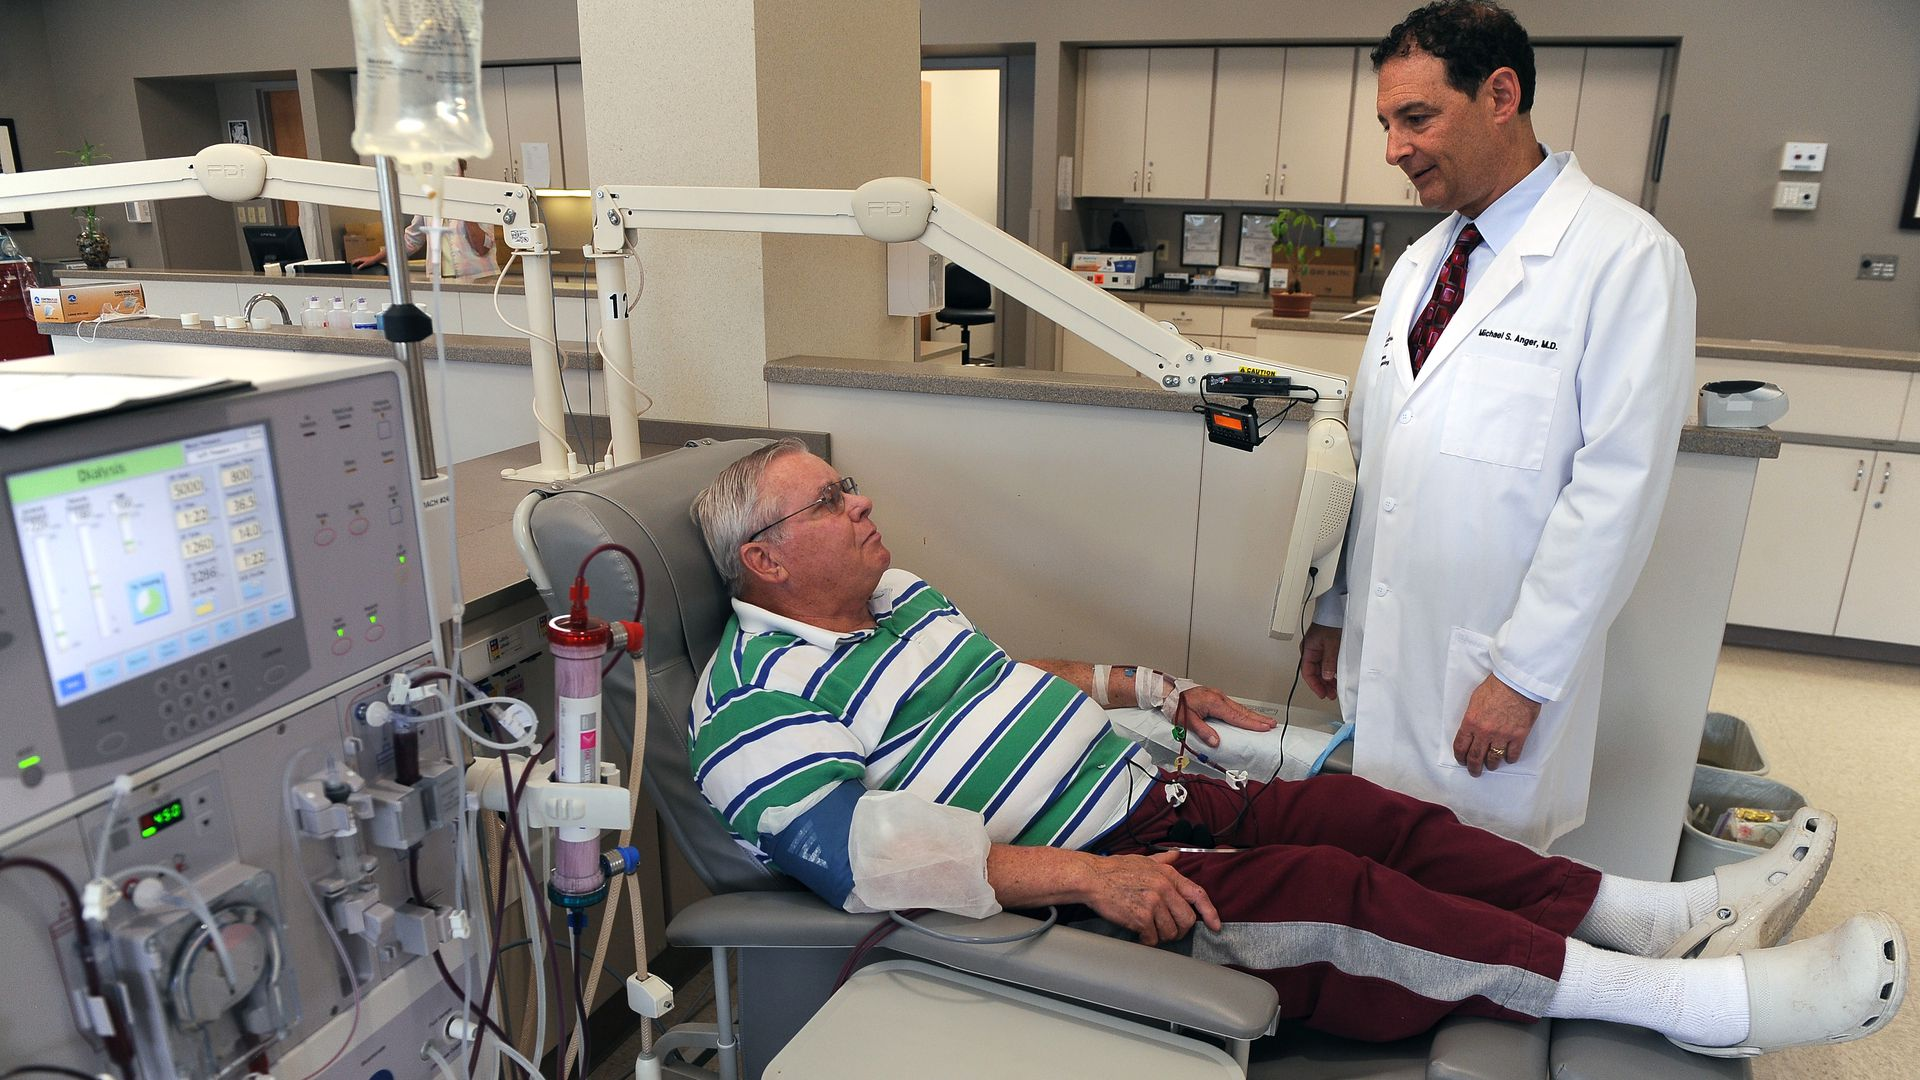 A doctor meets with a dialysis patient during treatment.